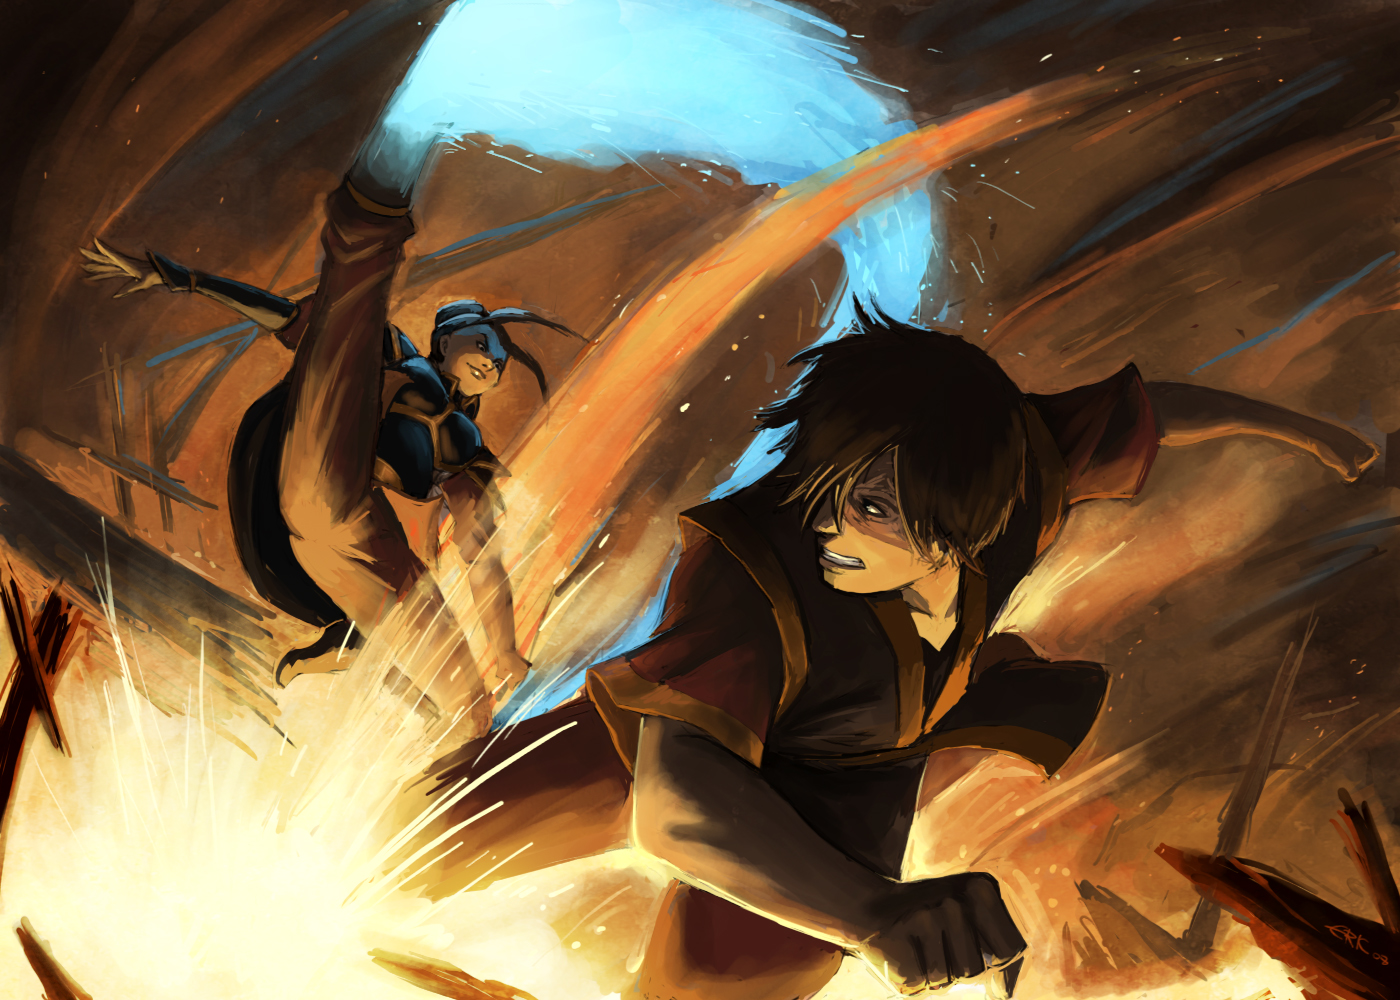 zuko vs azula b7 hd wallpaper